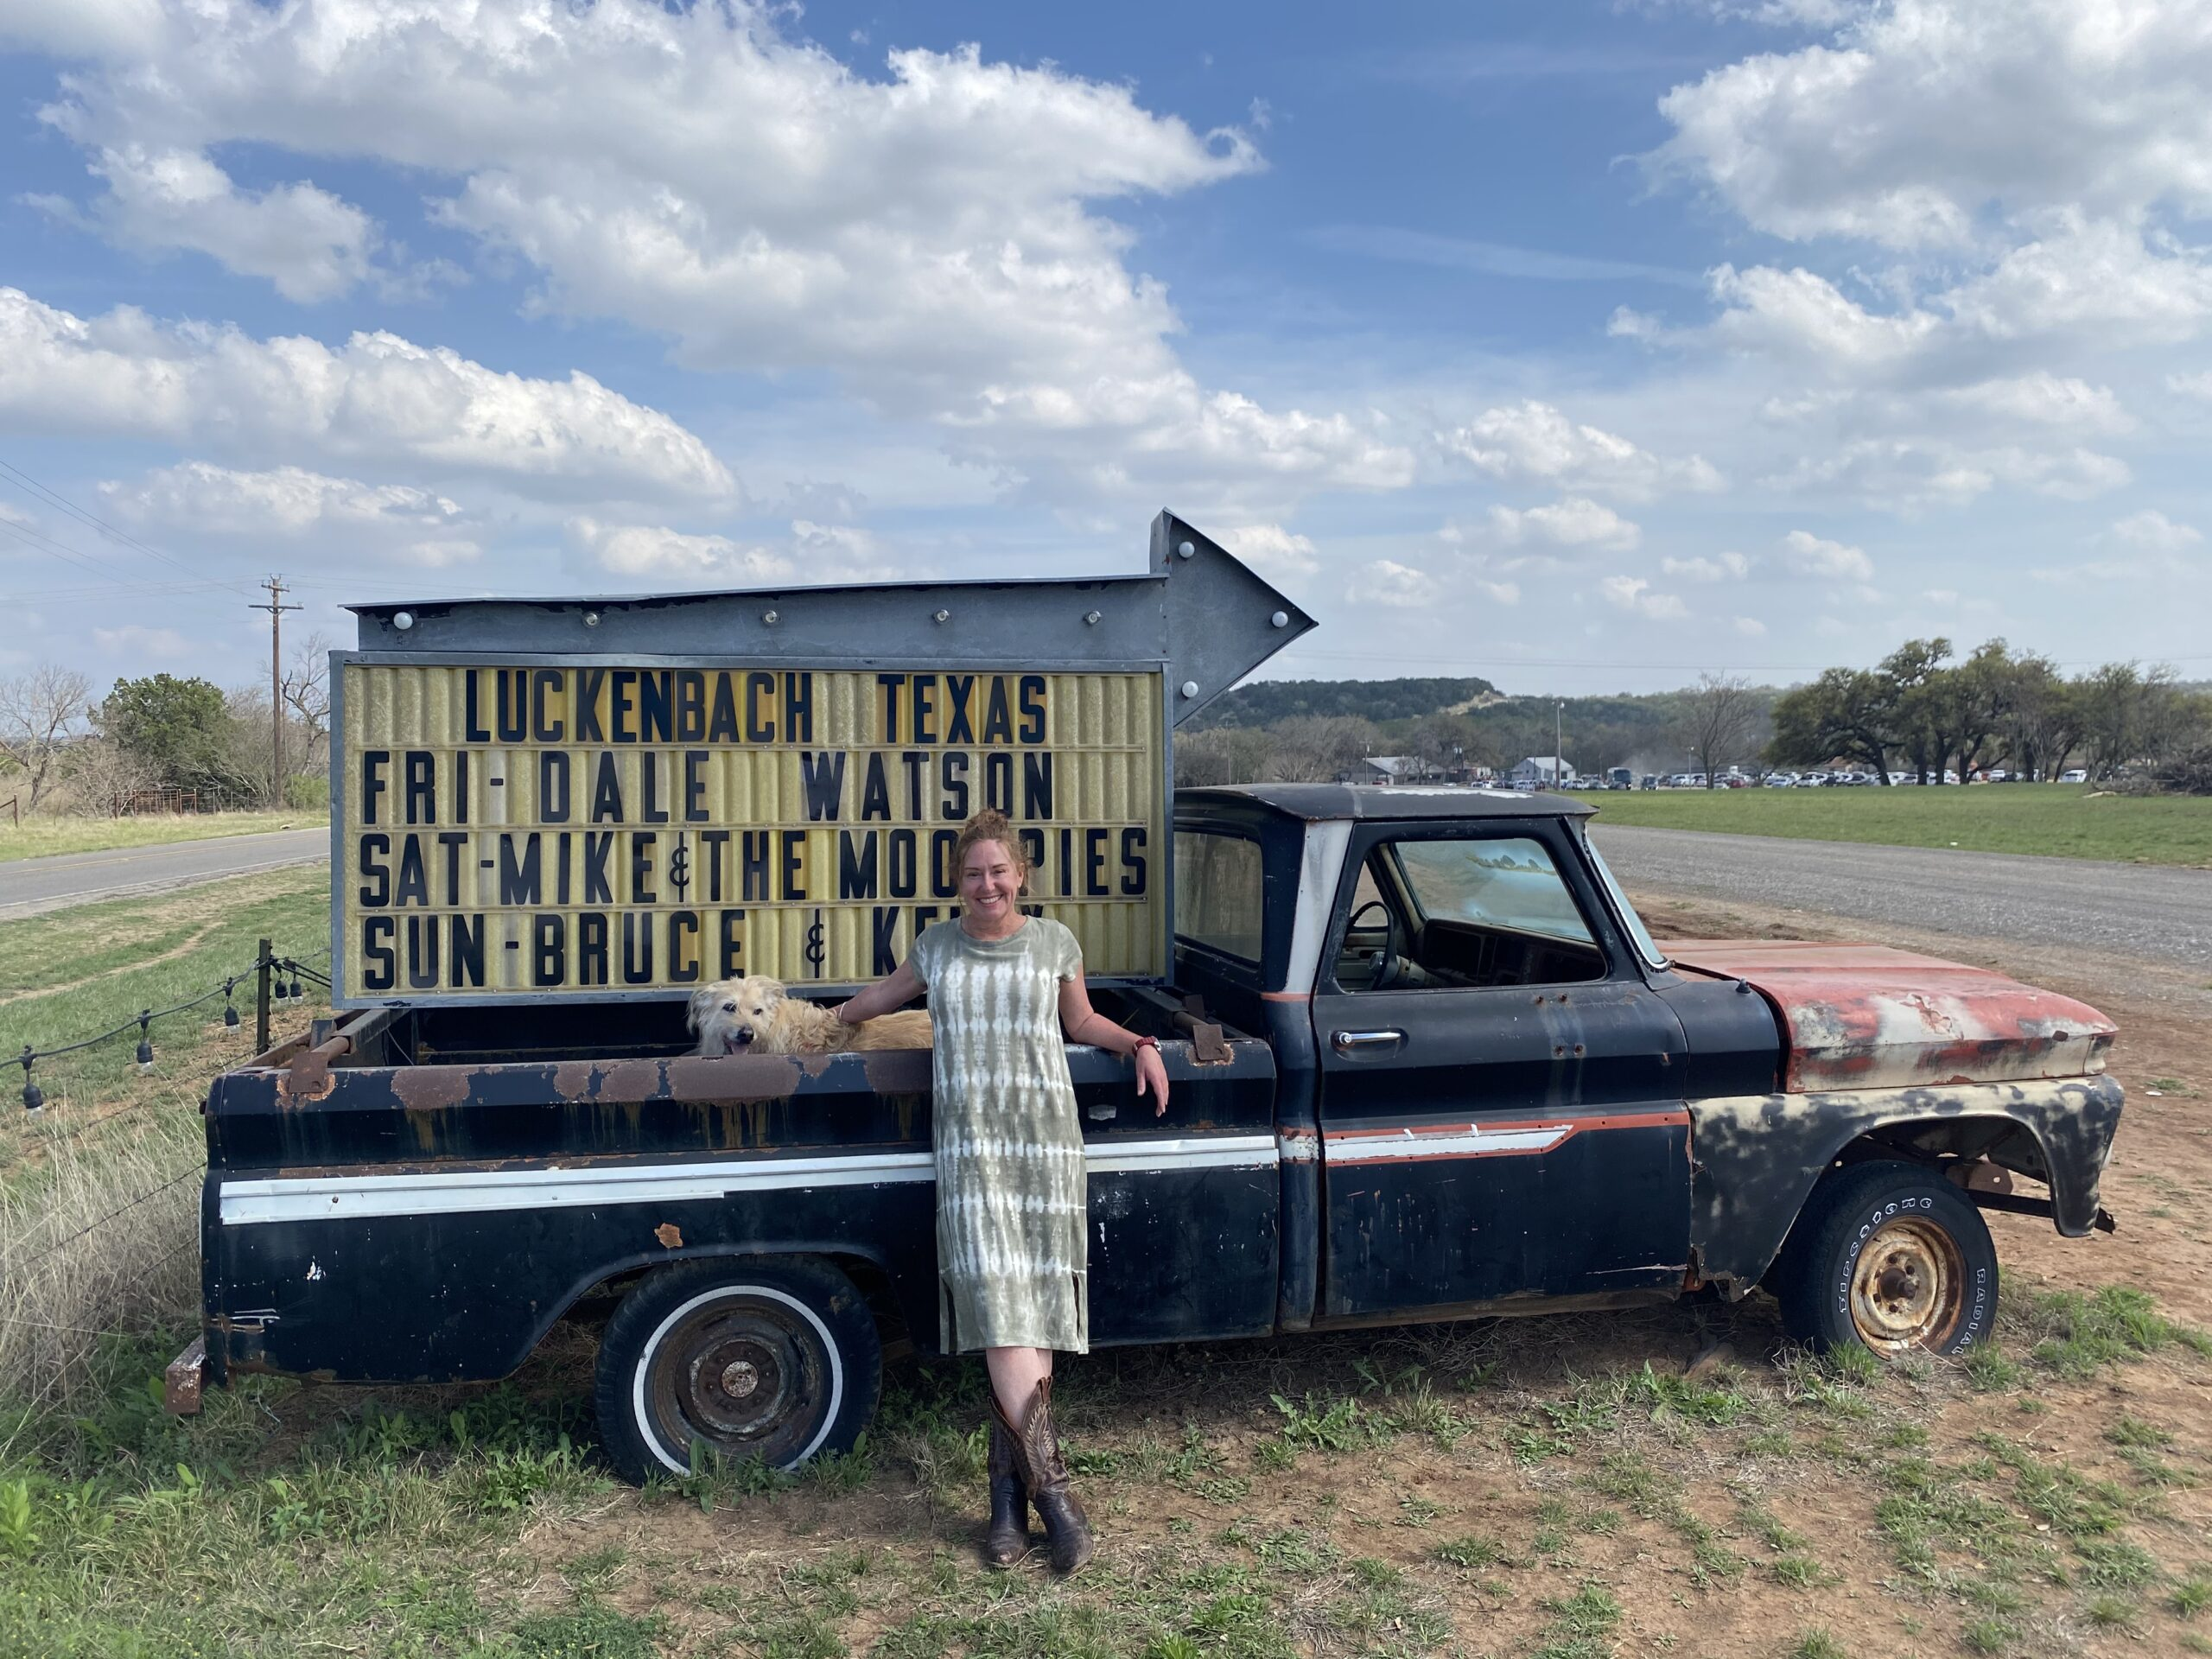 Woman and dog pose by old truck in Luckenbach